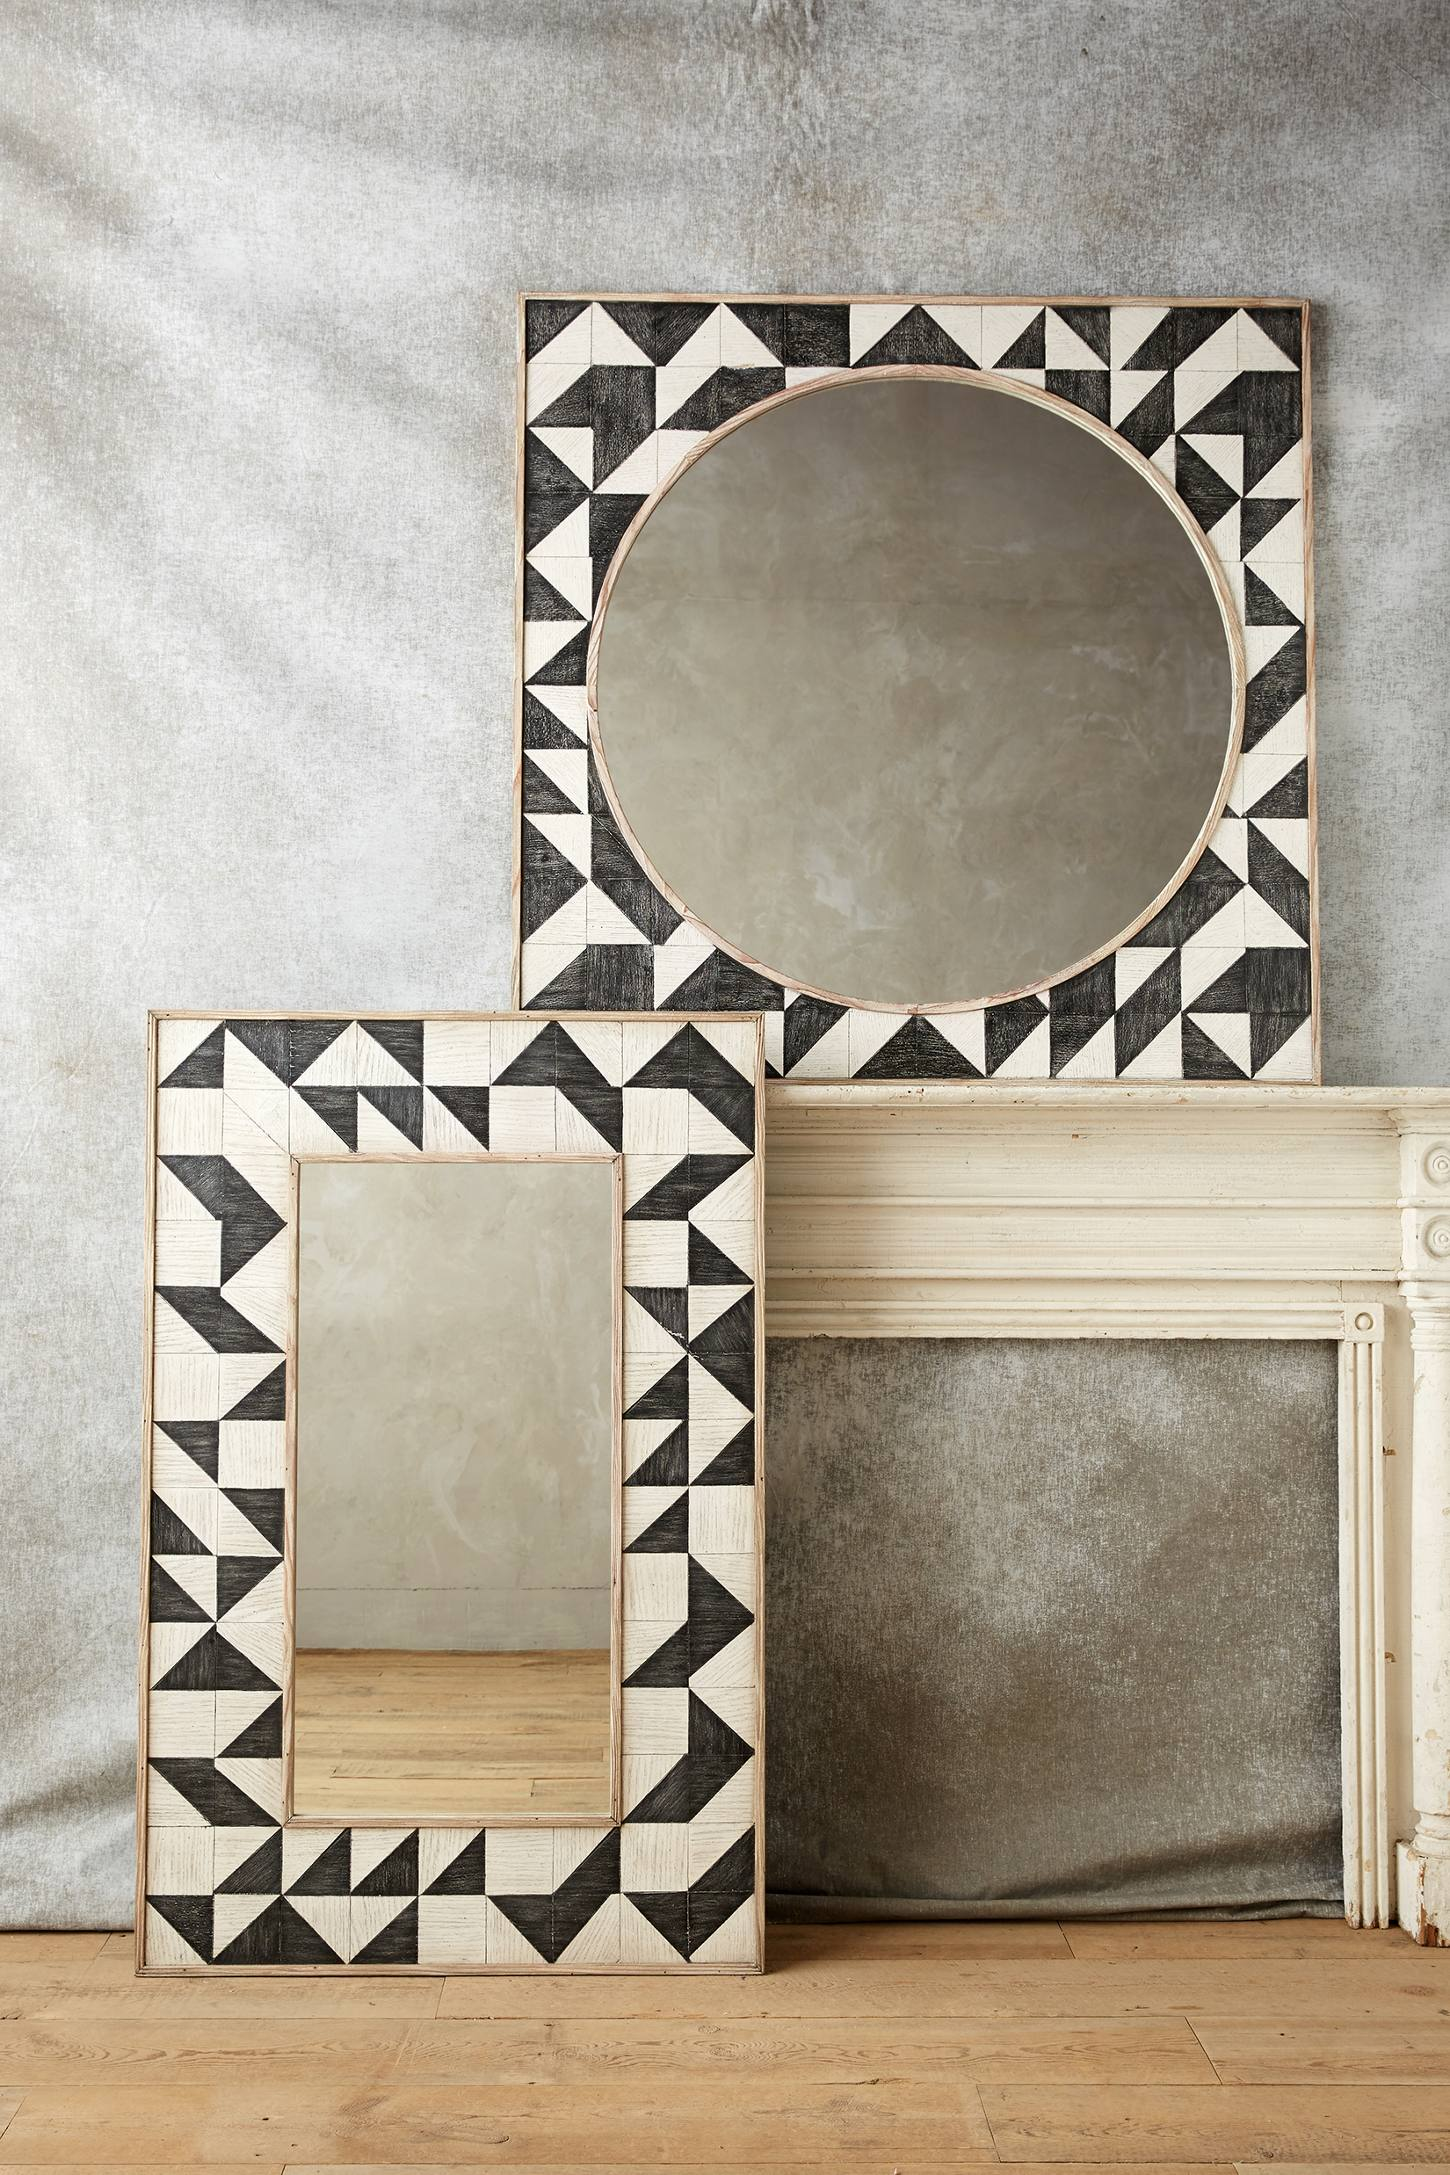 Brick Mosaic Mirror